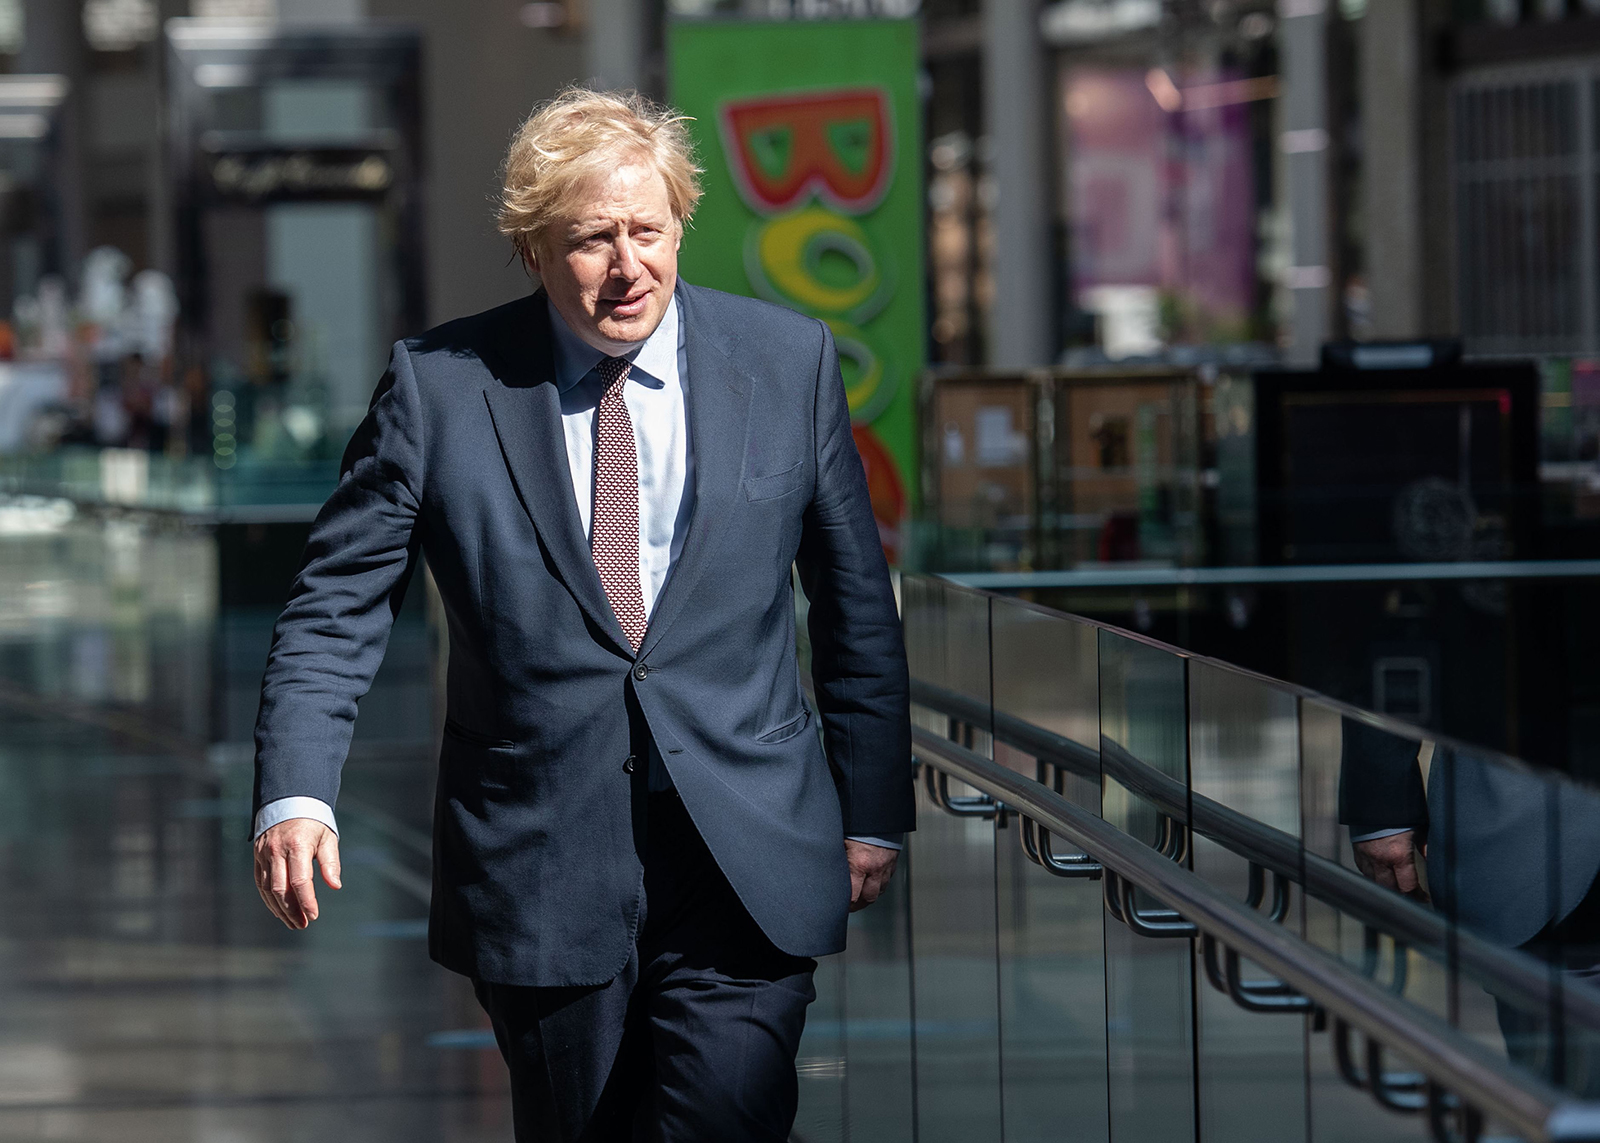 Britain's Prime Minister Boris Johnson visits Westfield shopping centre in east London on June 14.